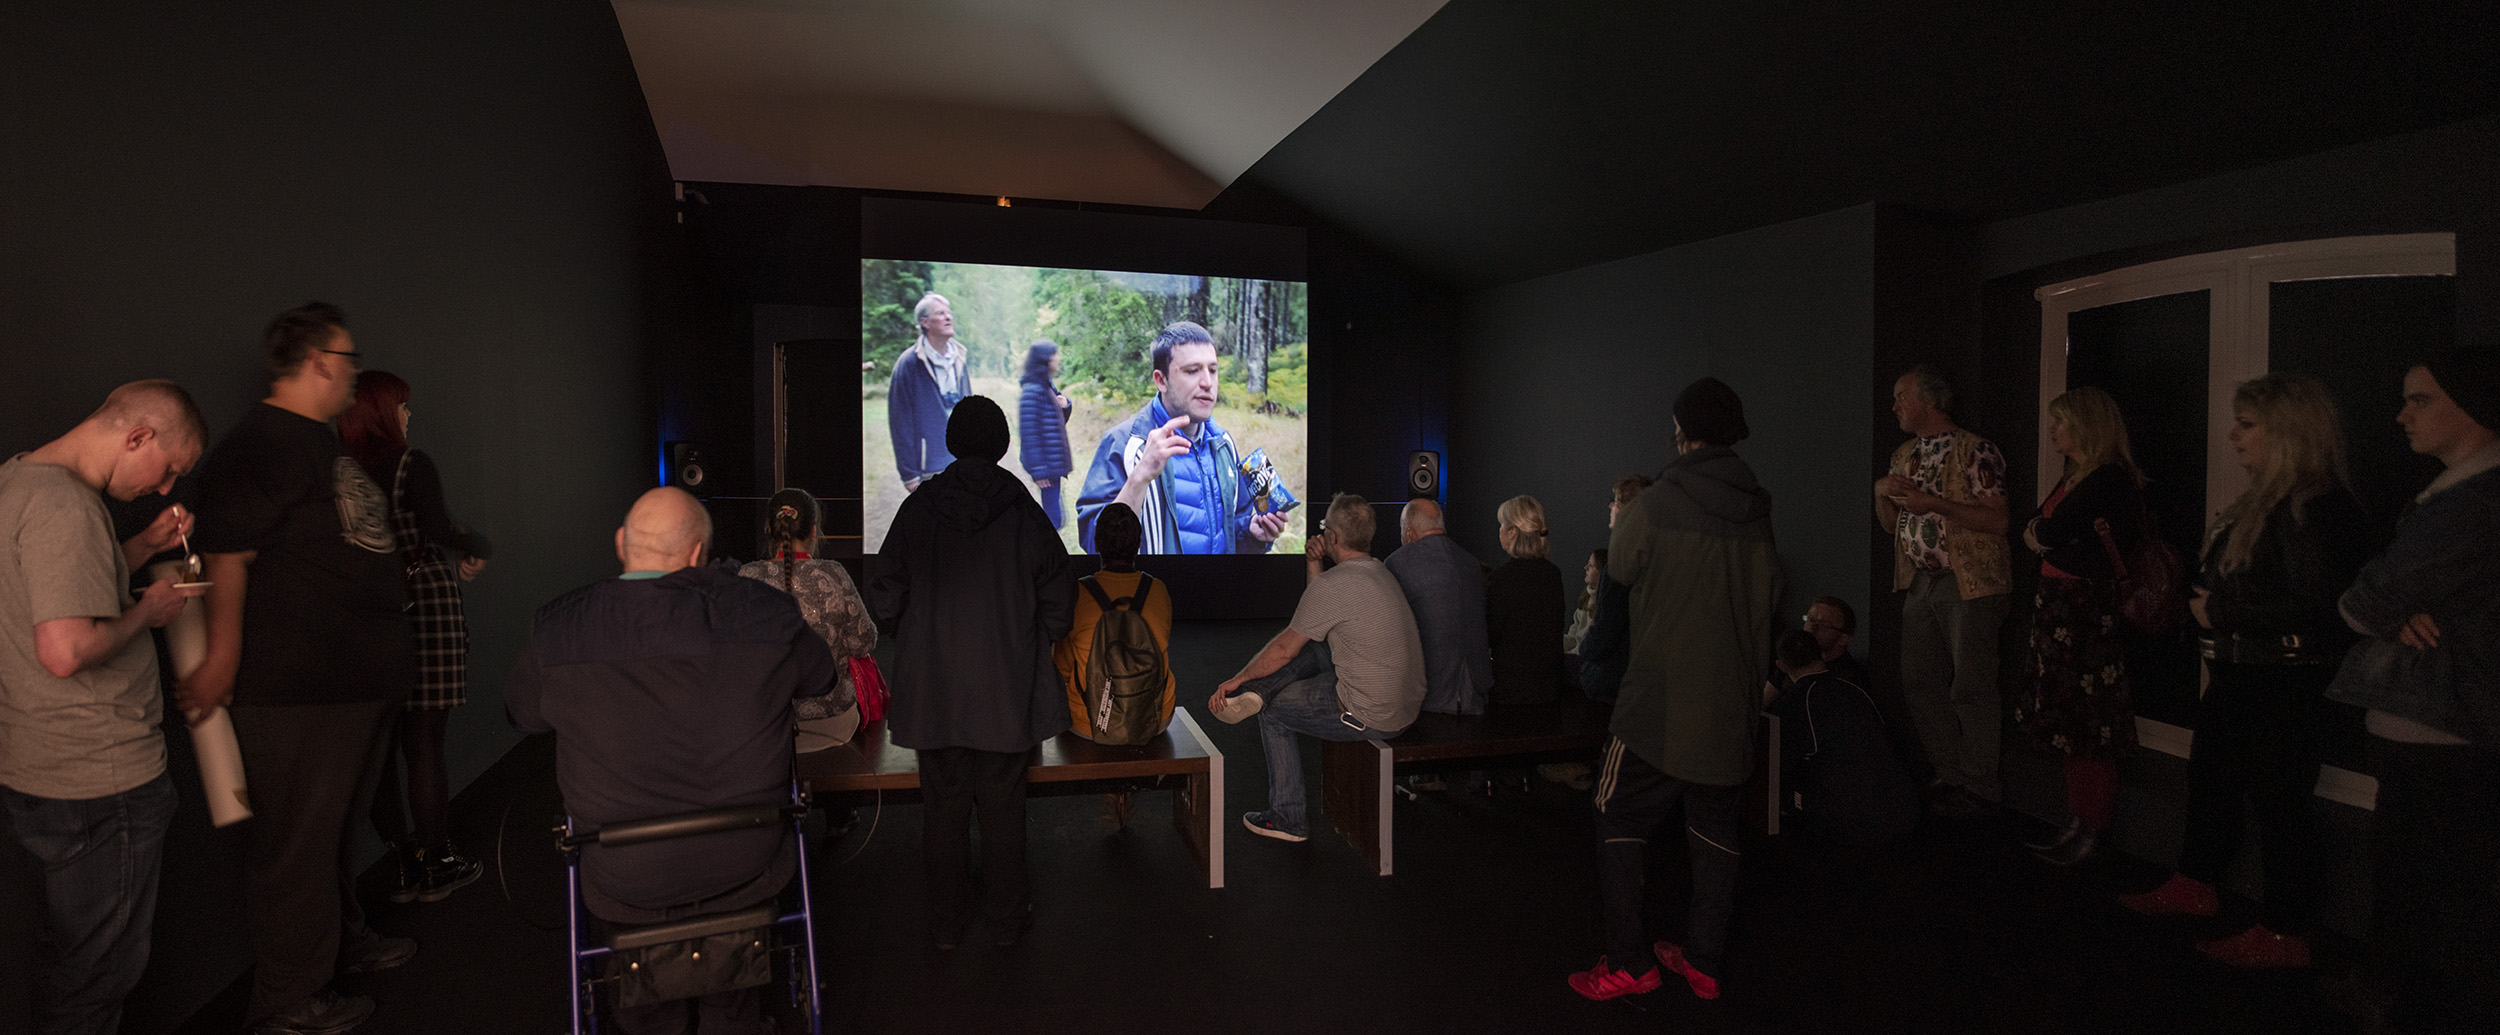 Illuminating the Wilderness film at Tate Liverpool, 2019, Project Art Works